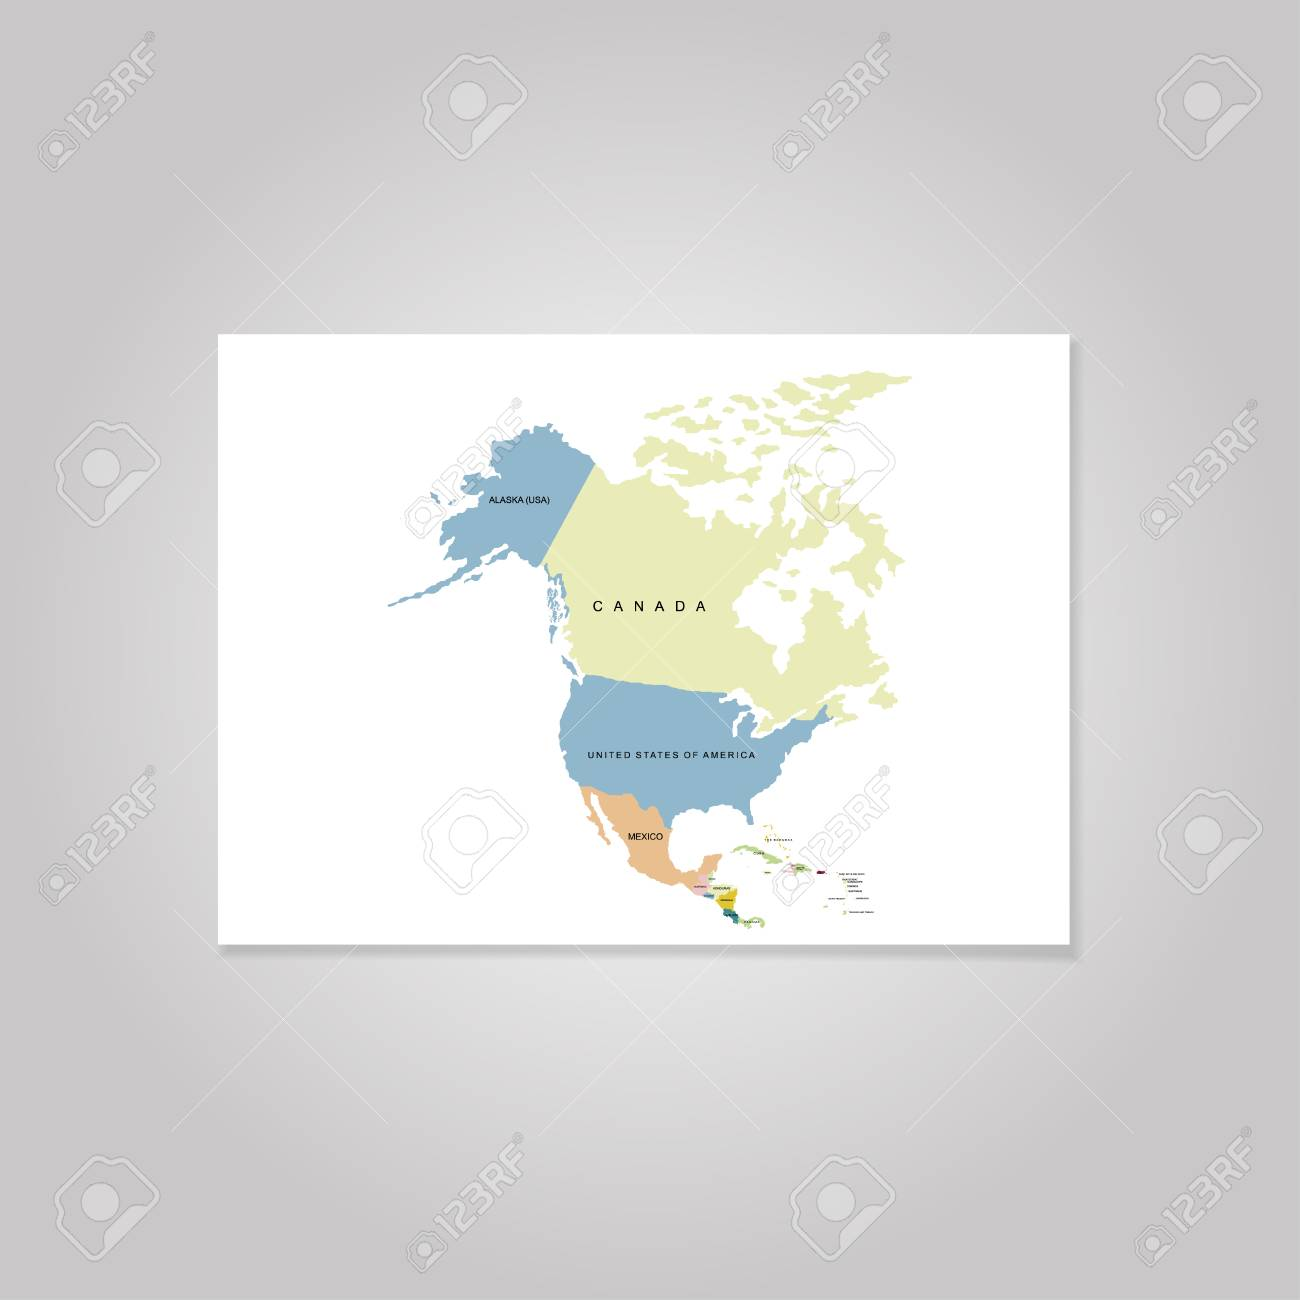 Map Of Alaska Canada And Usa on map of bc canada, map vancouver to alaska, large print map of alaska, map of western canada and alaska, us map alaska, vancouver map canada alaska, map of ak, map of usa with hawaii, map of alaska and canada together, map of canada and greenland, map of northern alaska, map of russia and canada, cities in russia near alaska, northern canada and alaska,